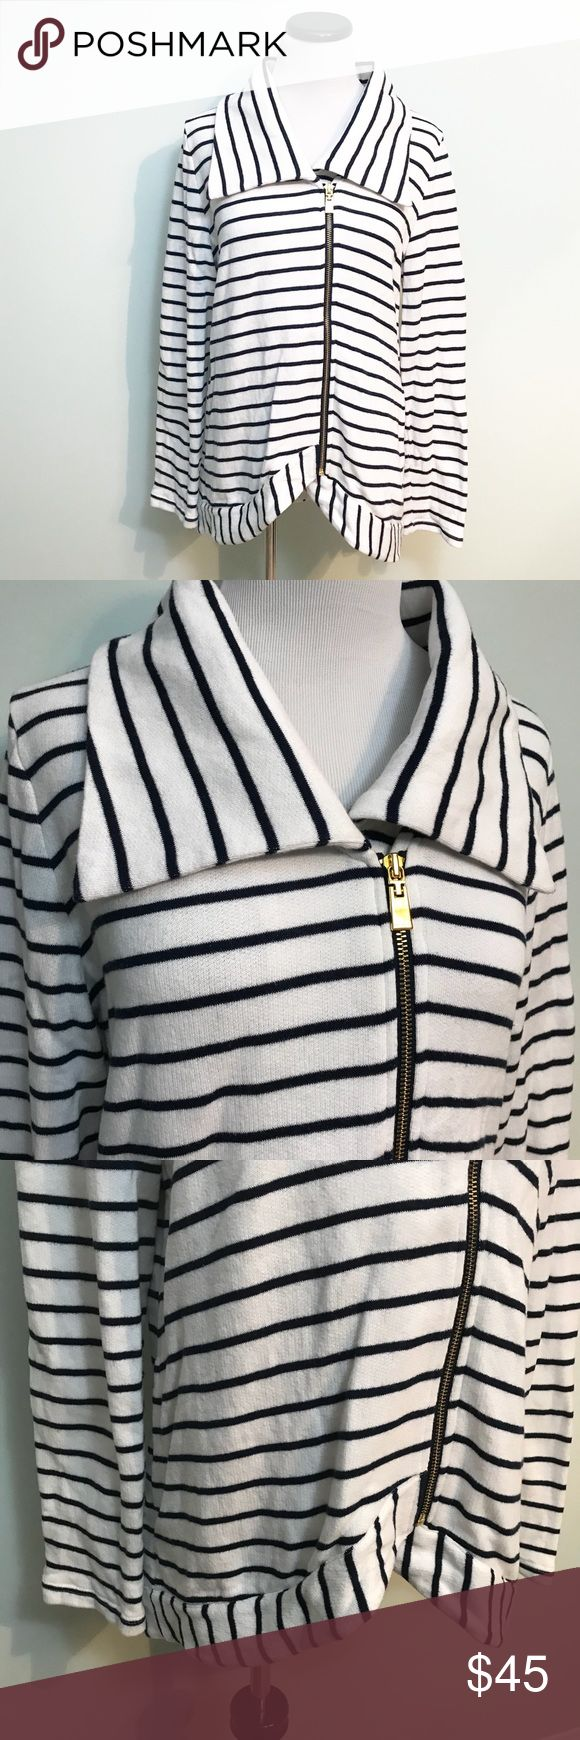 "TOMMY HILFIGER Navy blue white zip up Jacket Tommy Hilfiger Navy blue and white striped zip up Jacket sweatshirt. Sweatshirt material. Gold colored zipper. Slight hi low design. Length in front 26"". Chest 21.5"". Side pockets. Big shawl collar. Tommy Hilfiger Jackets & Coats"